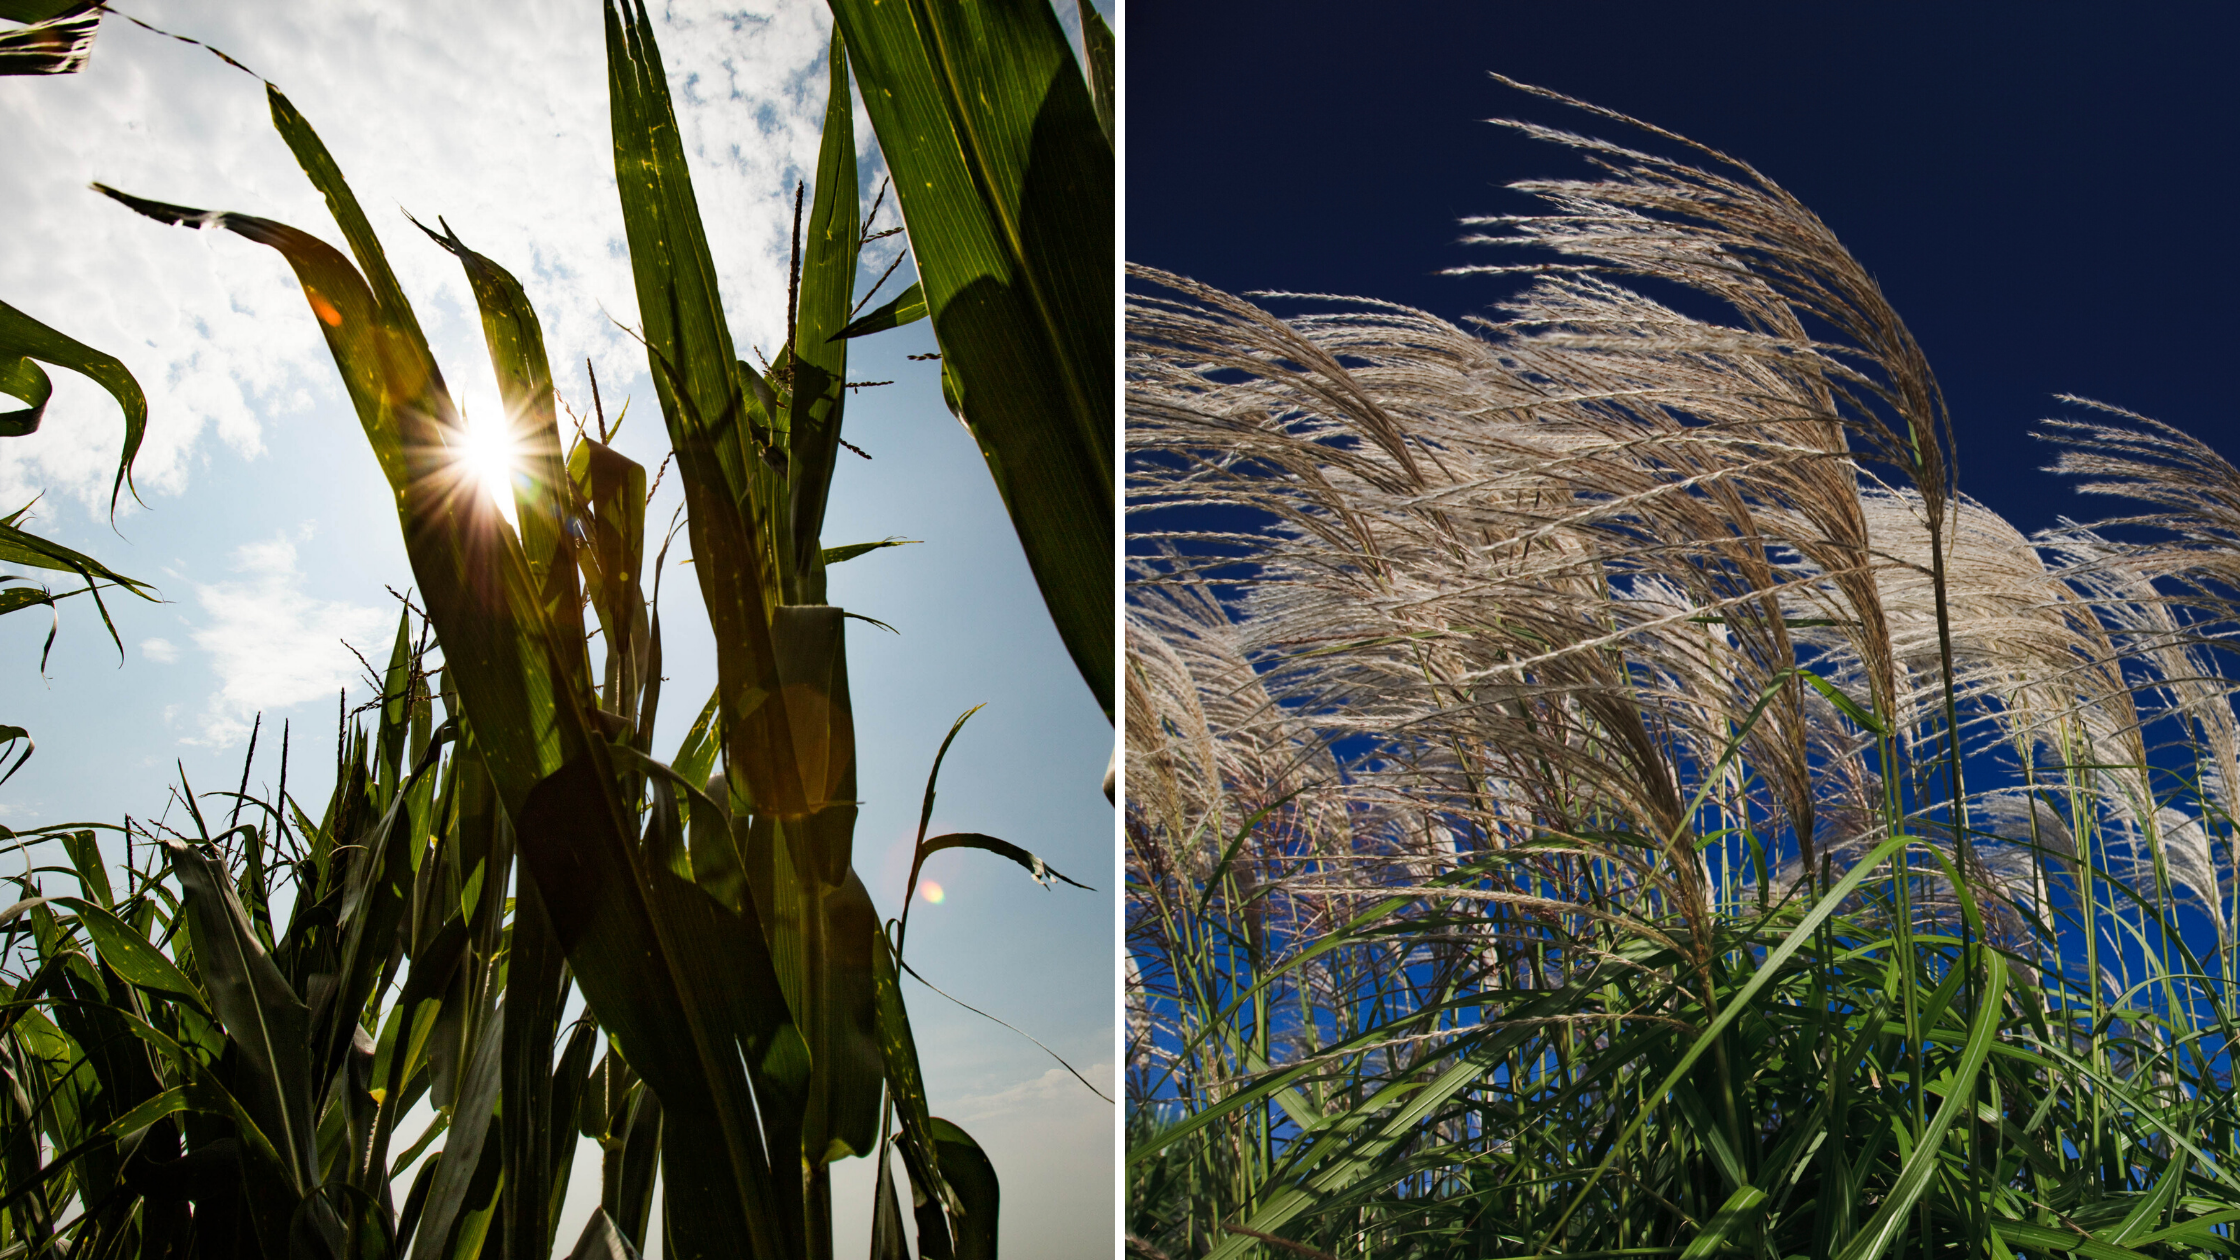 Maize and Miscanthus